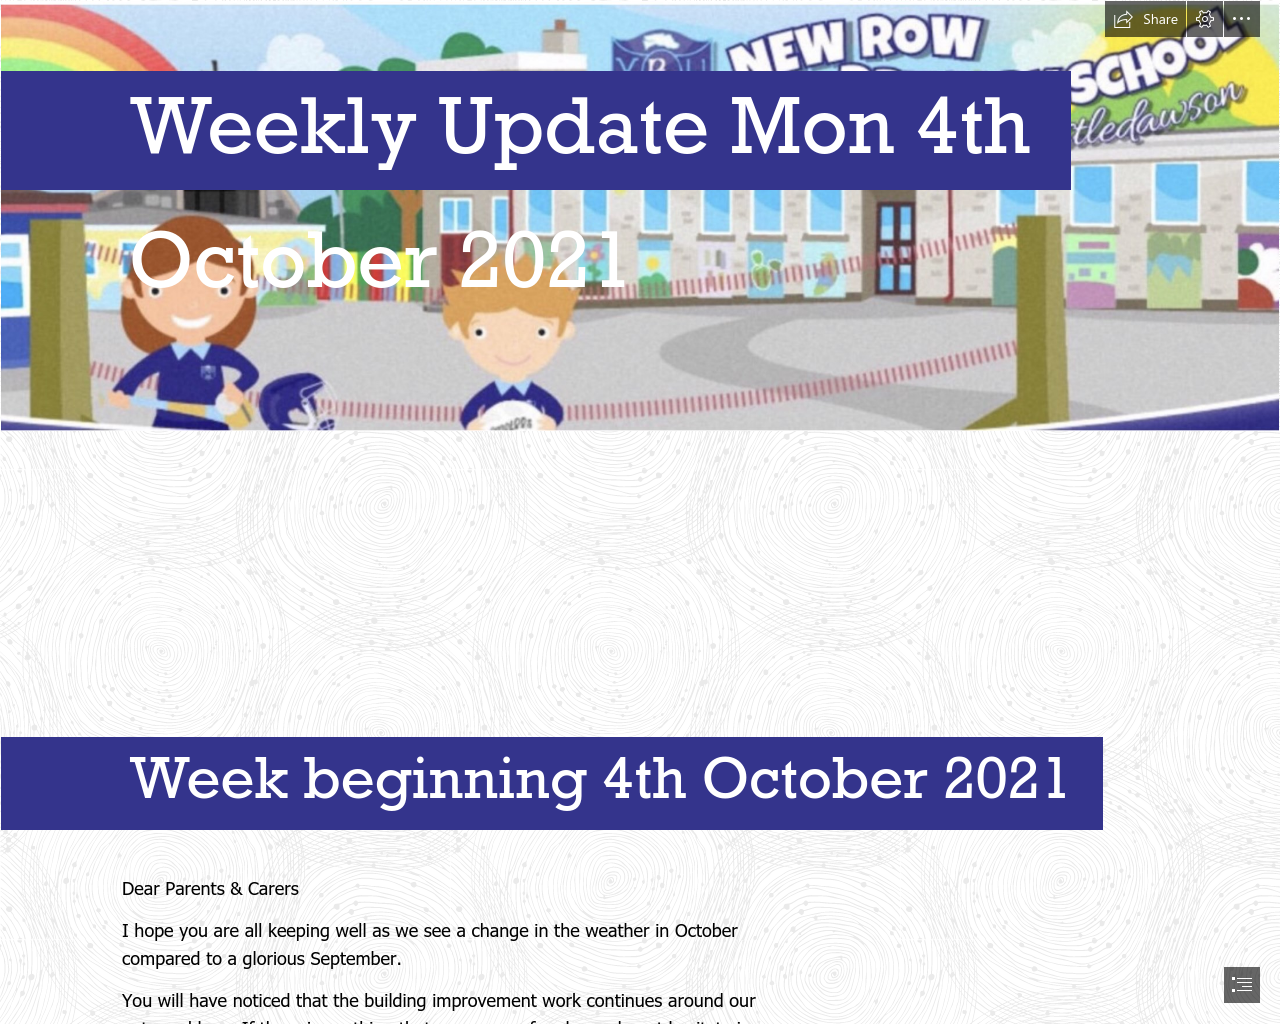 Weekly Update 4th October 2021